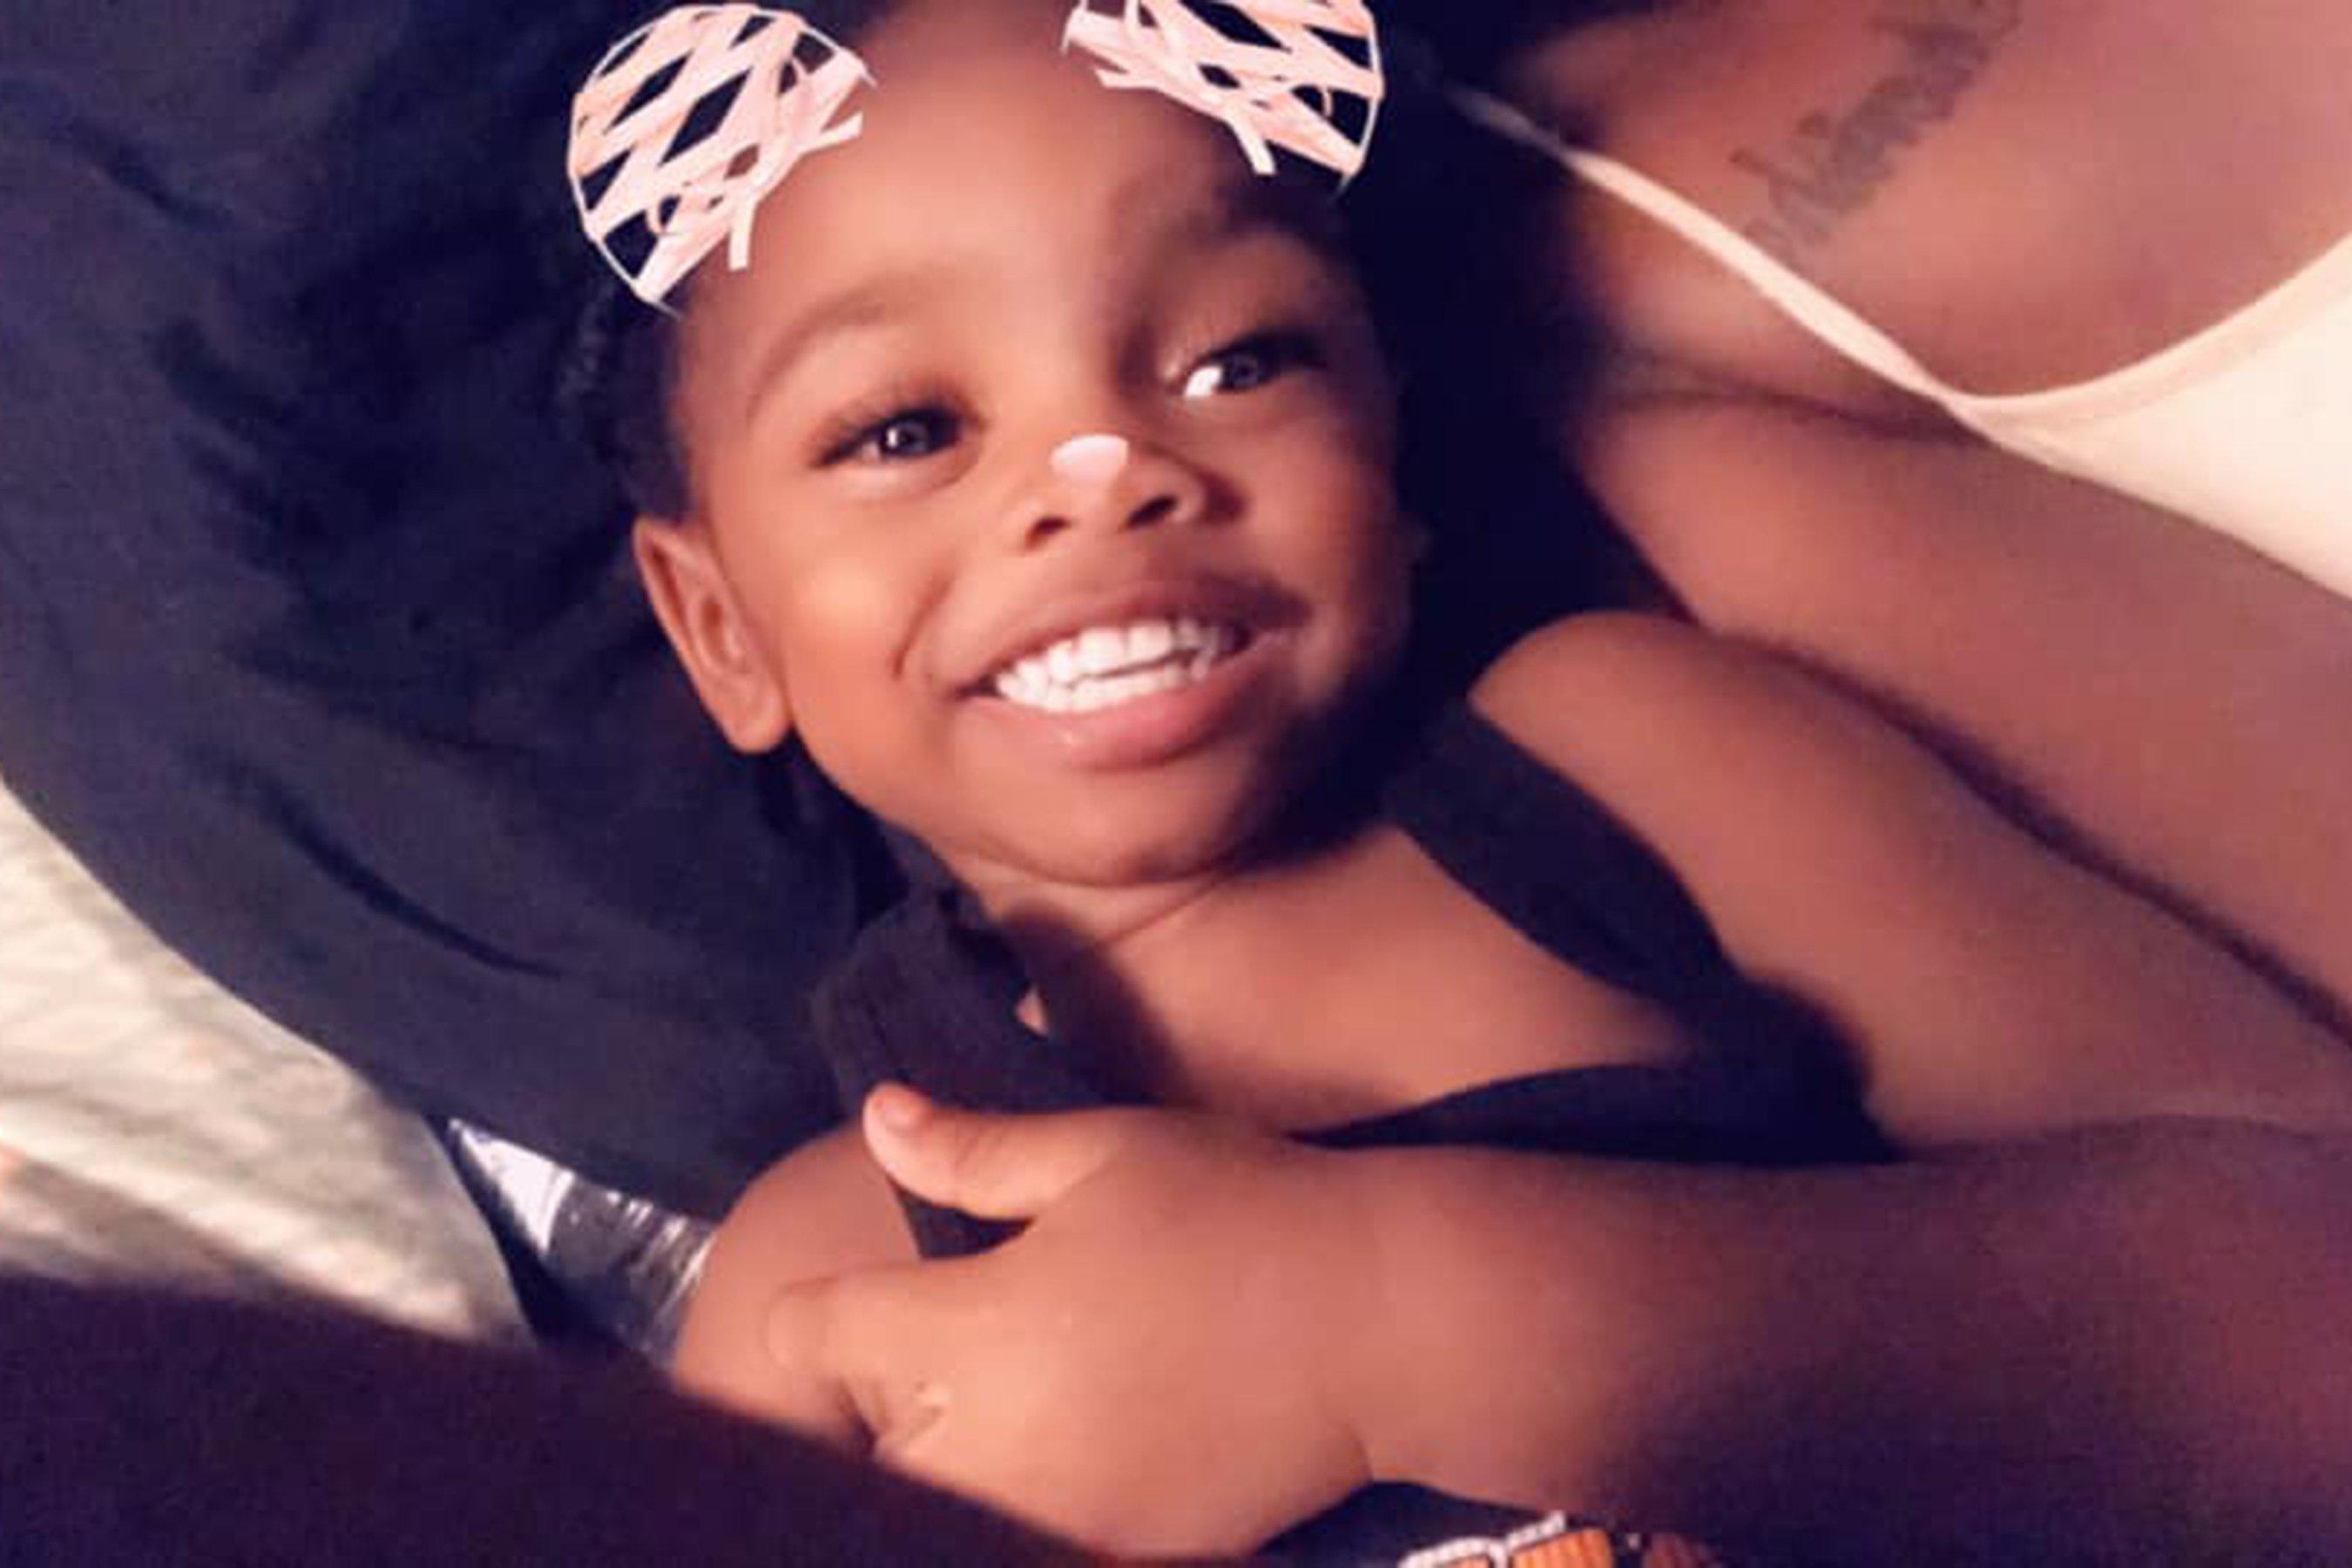 3-Year-Old Girl Is Killed by Her Dad After Running Out to Greet Him, Then He Turns Gun on Himself